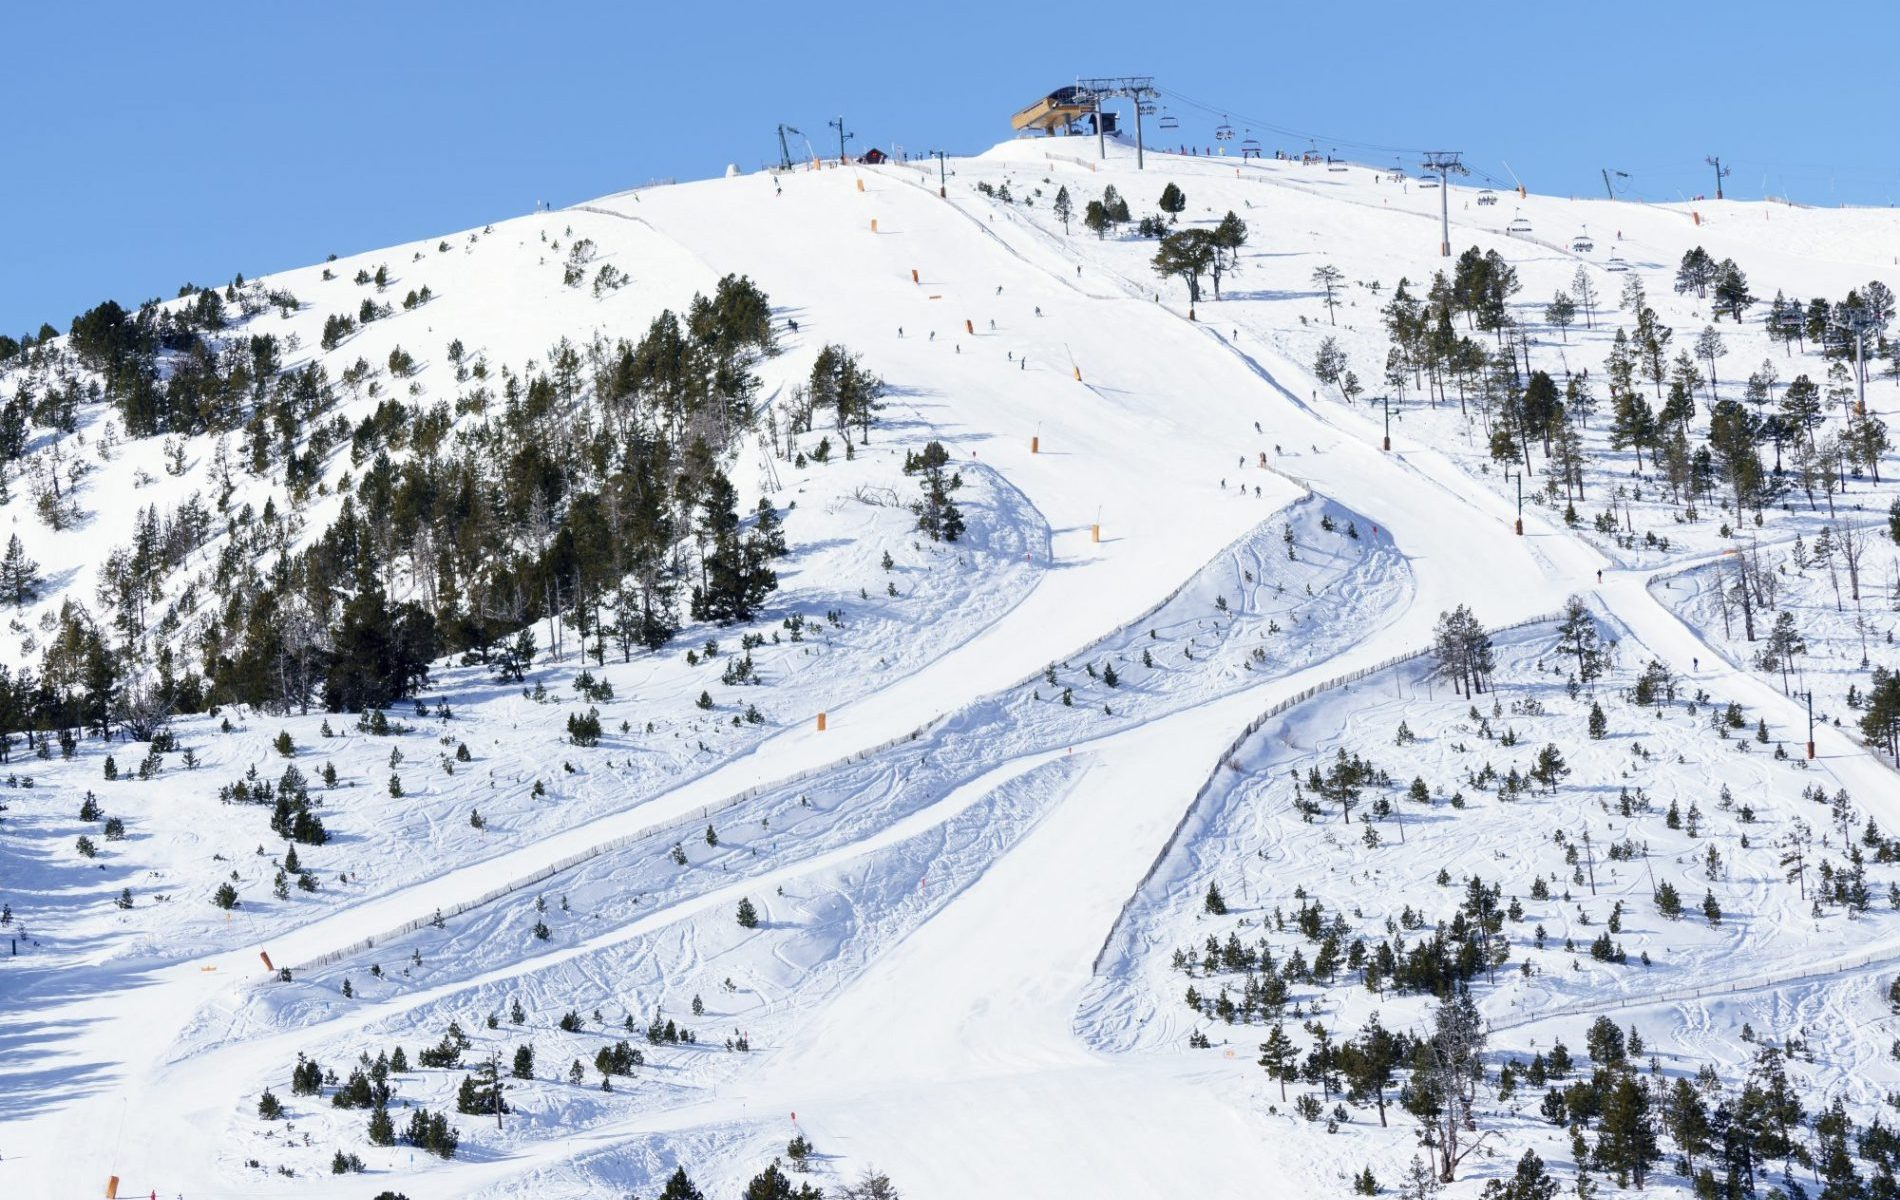 Pal Arinsal will invest 3 million euros in improvements for the 2019-20 season. Photo: Vallnord Pal Arinsal.